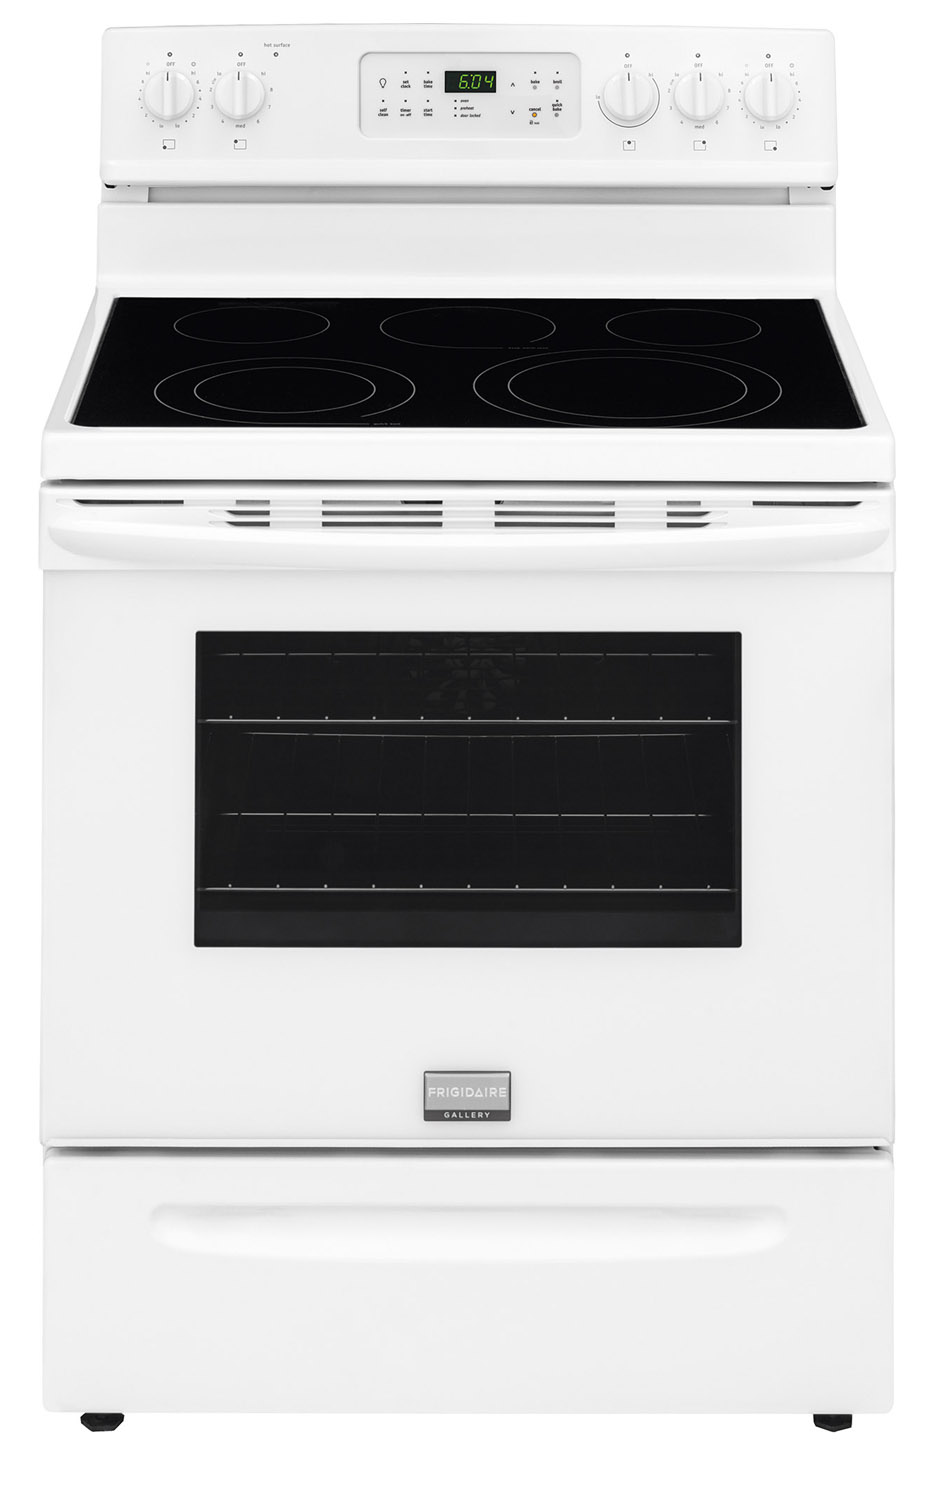 Frigidaire Gallery 30 in. 5.7 cu. ft. Electric Range with Self-Cleaning QuickBake Convection Oven in White